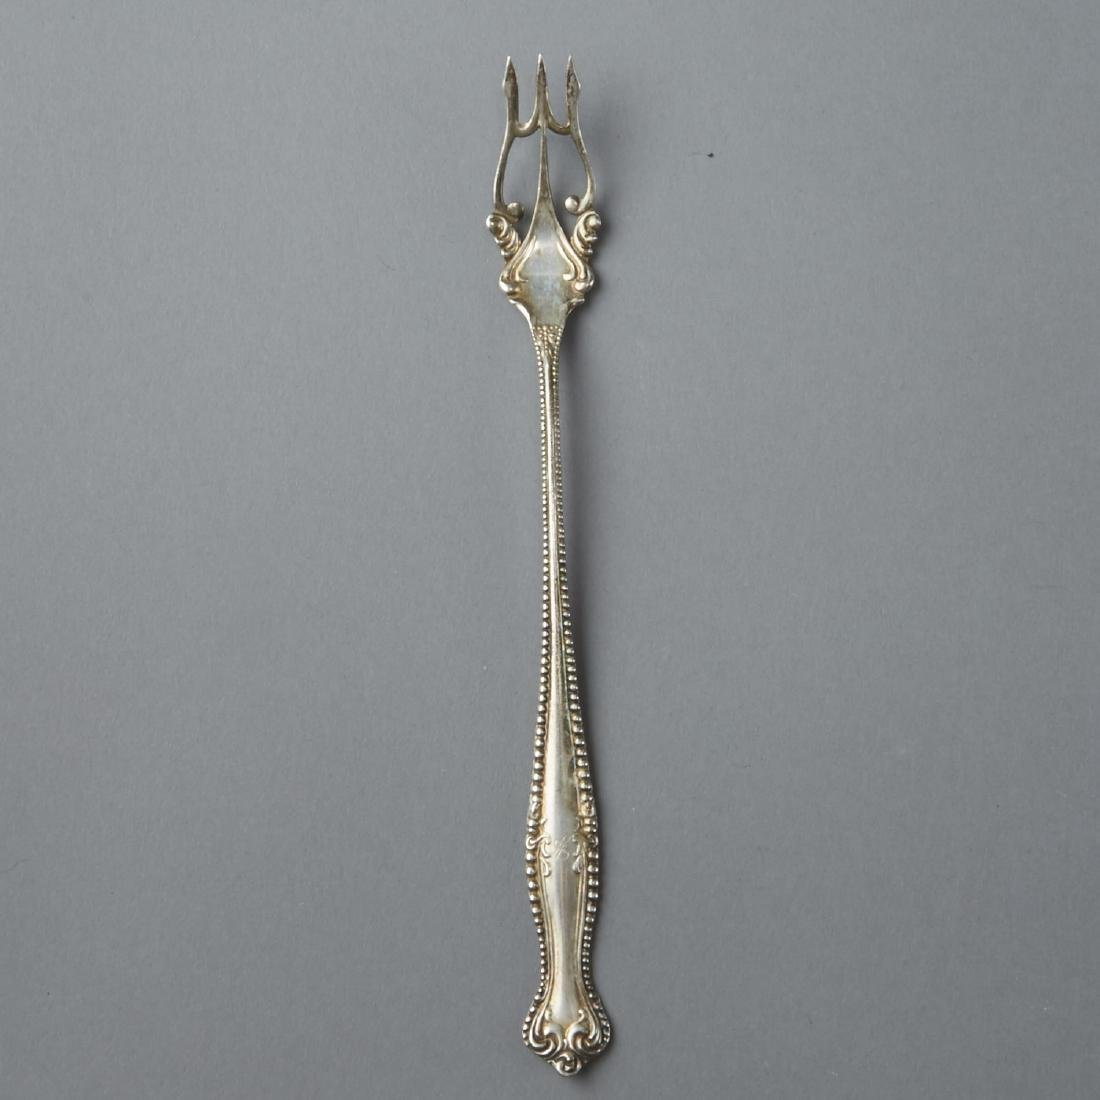 Set of 70 Pieces of Sterling Silver Flatware - 2